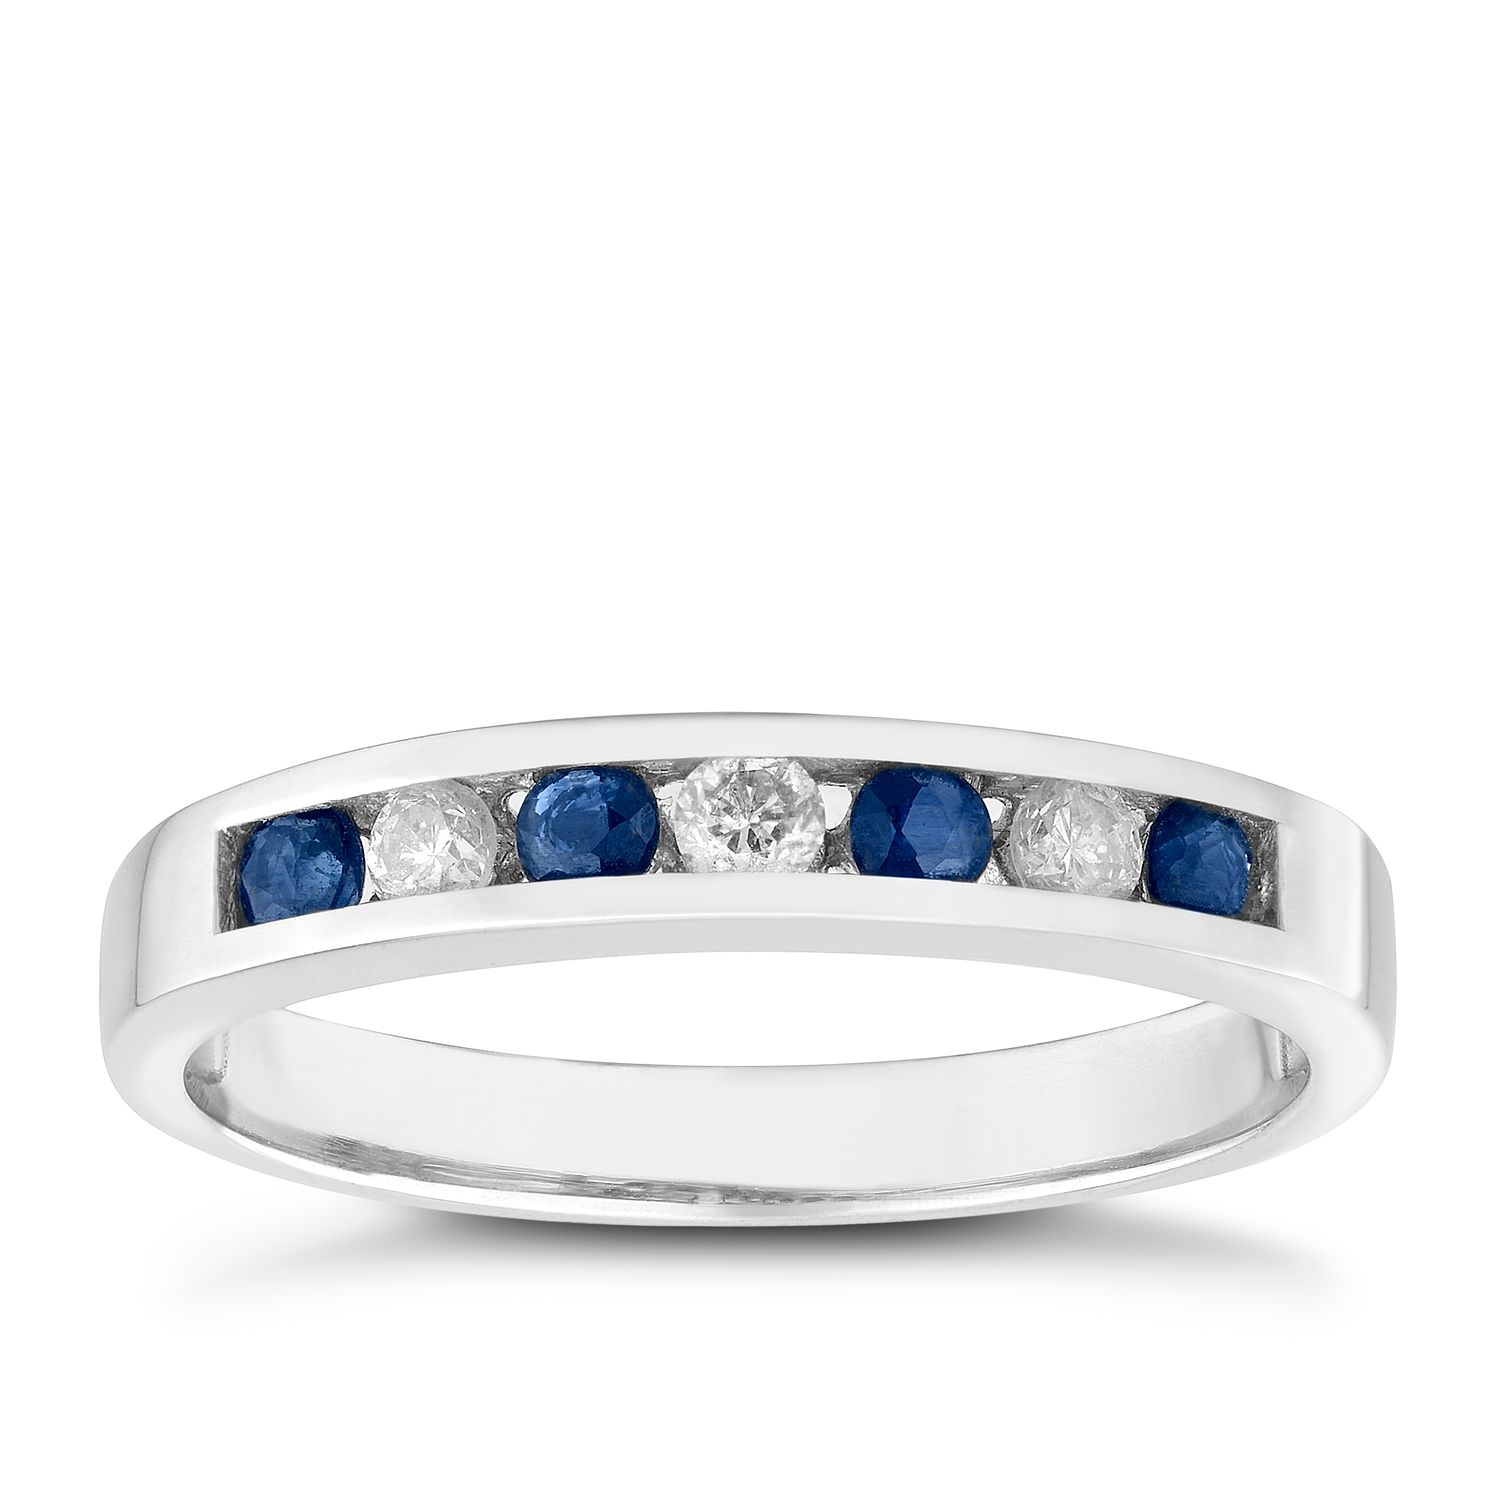 rings precious sapphire sons jewelers diamond gemstone band bands s rivchun ladies fashion chas and eternity